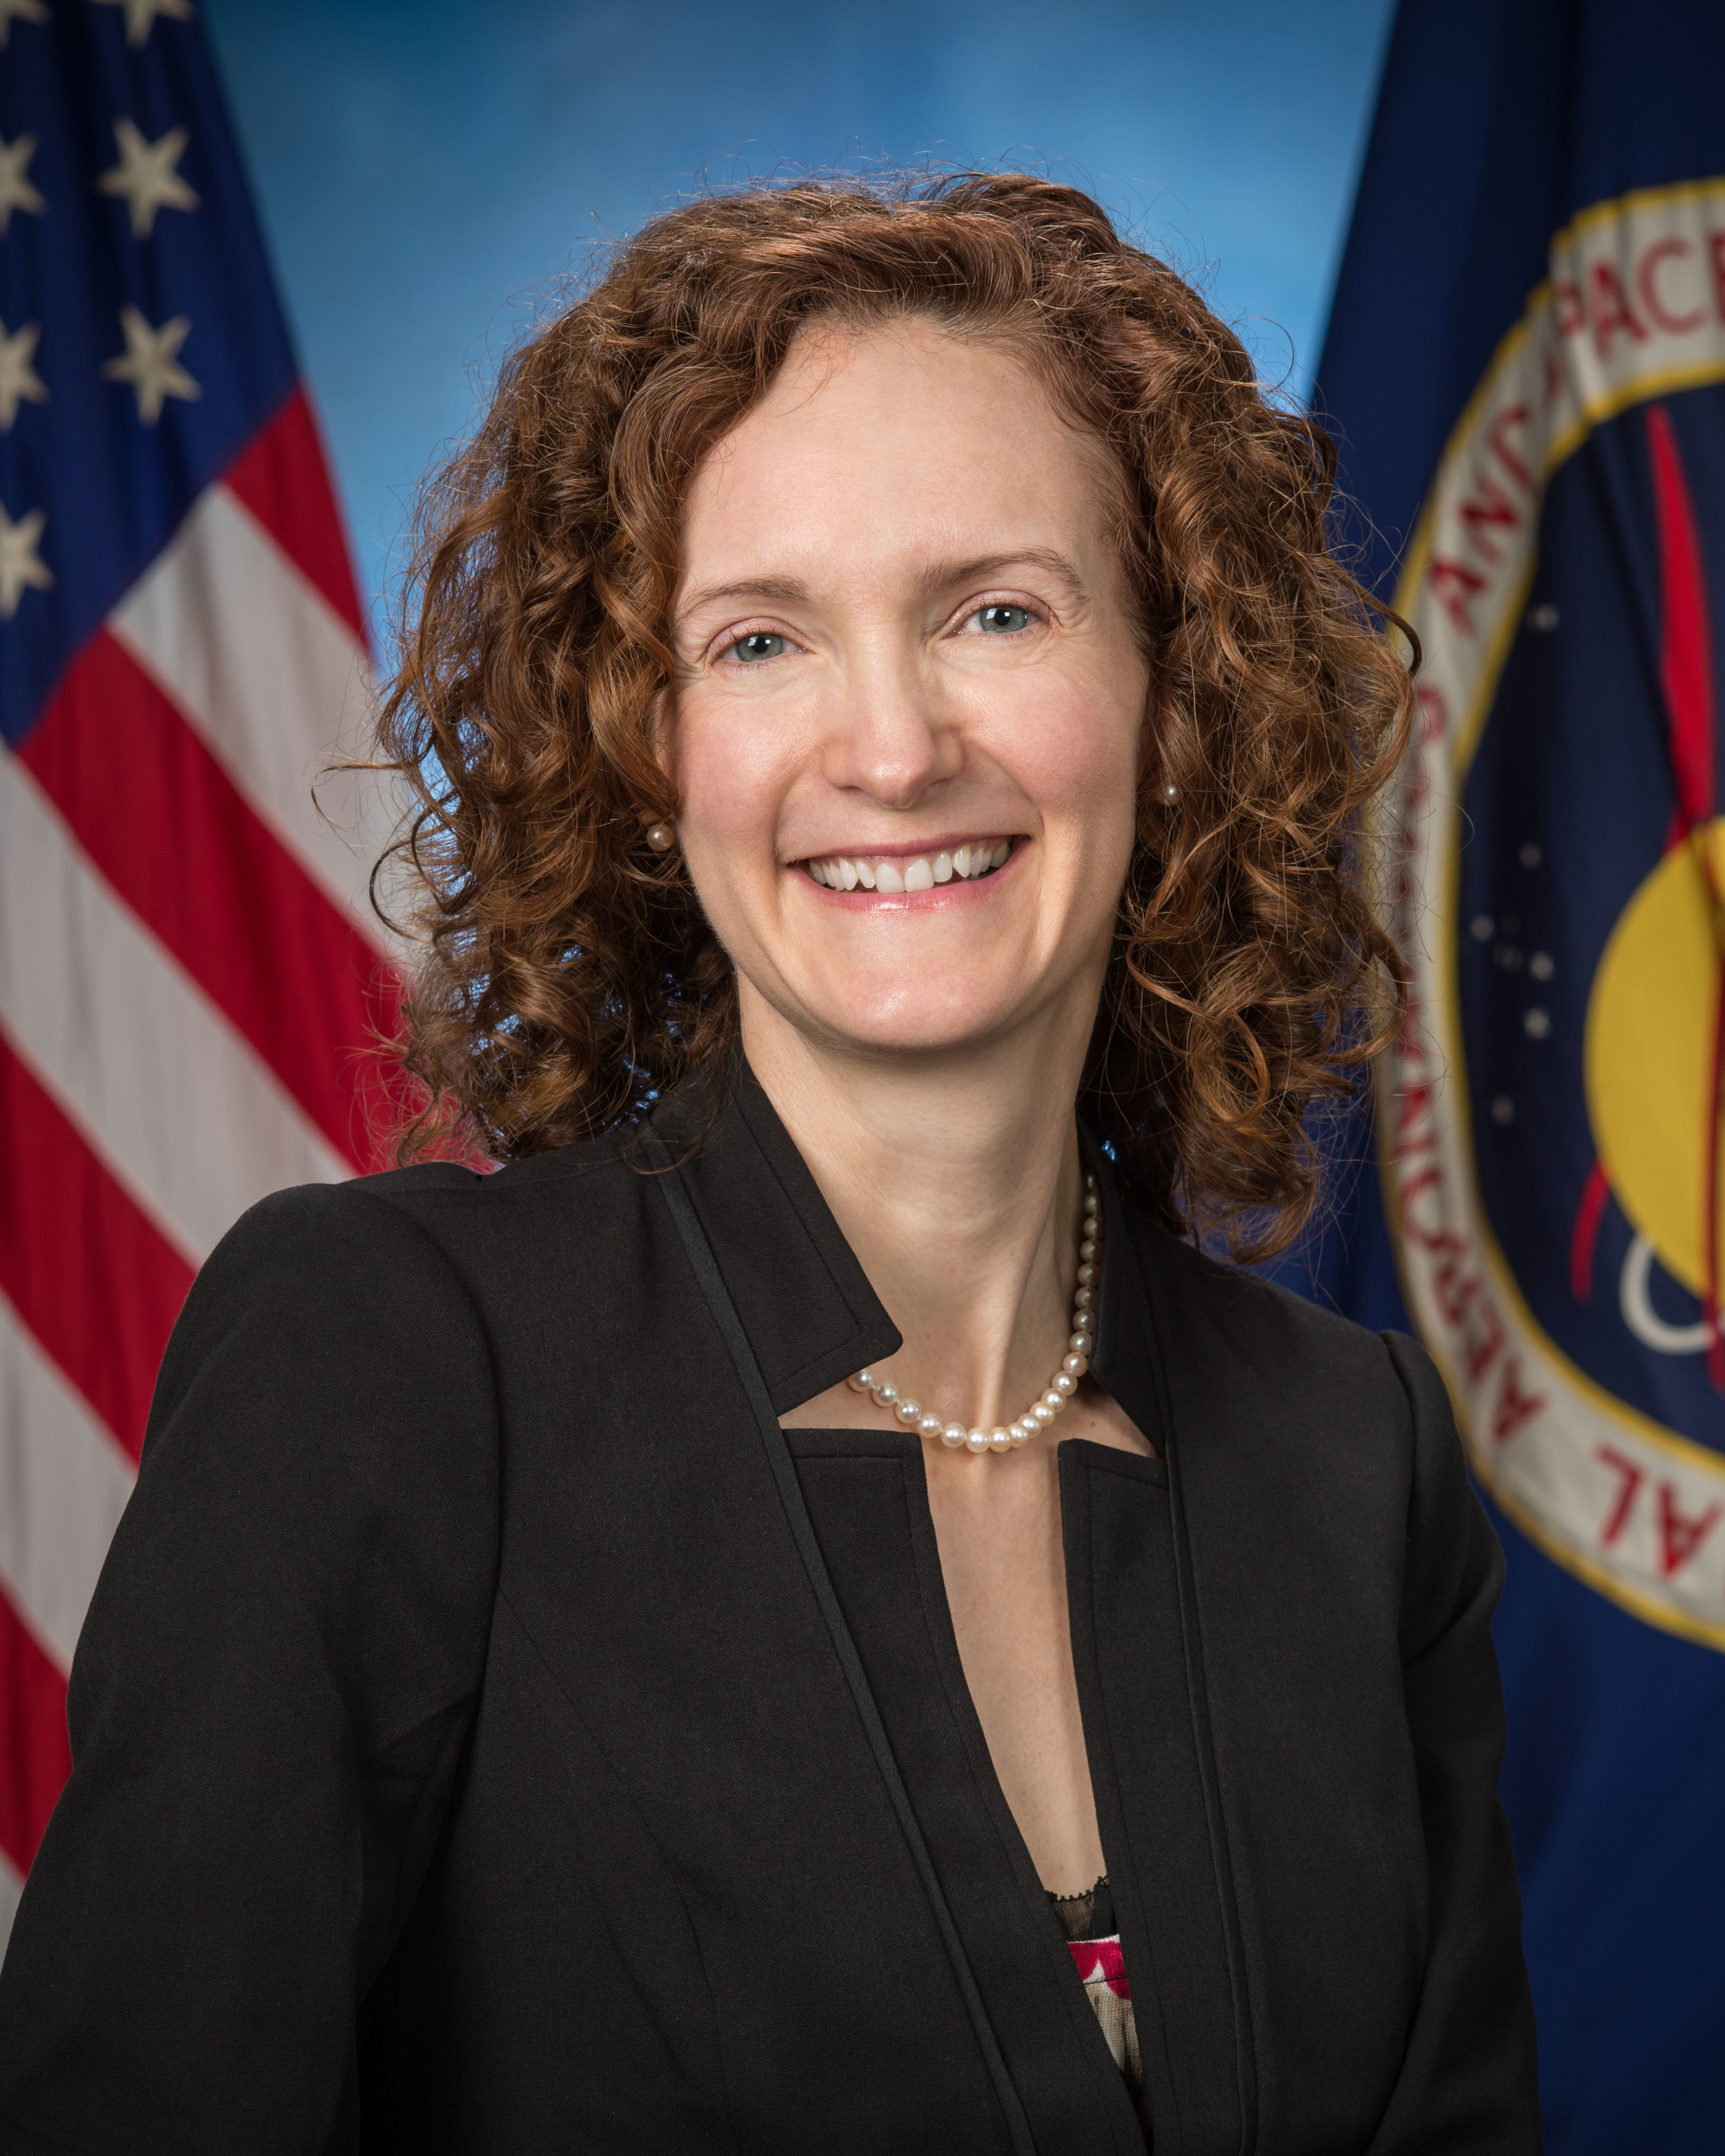 Today's Guest: Jennifer Ross-Nazzal - Dr. Jennifer Ross-Nazzal has served as the JSC Historian since 2004. Jennifer provides real-time resource and reference assistance to internal and external customers, and has shared her expertise with many NASA areas, broadcasting agencies, documentarians, and others. She was awarded her Ph.D. from Washington State University, her master's in History from New Mexico State University, and B.A. in History and Political Science from the University of Arizona.Jennifer holds the unique distinction of being a scholar of NASA history and women's history. She has been featured as a subject matter expert in several documentaries; is an accomplished oral historian; has presented at numerous national conferences; and authored many publications.